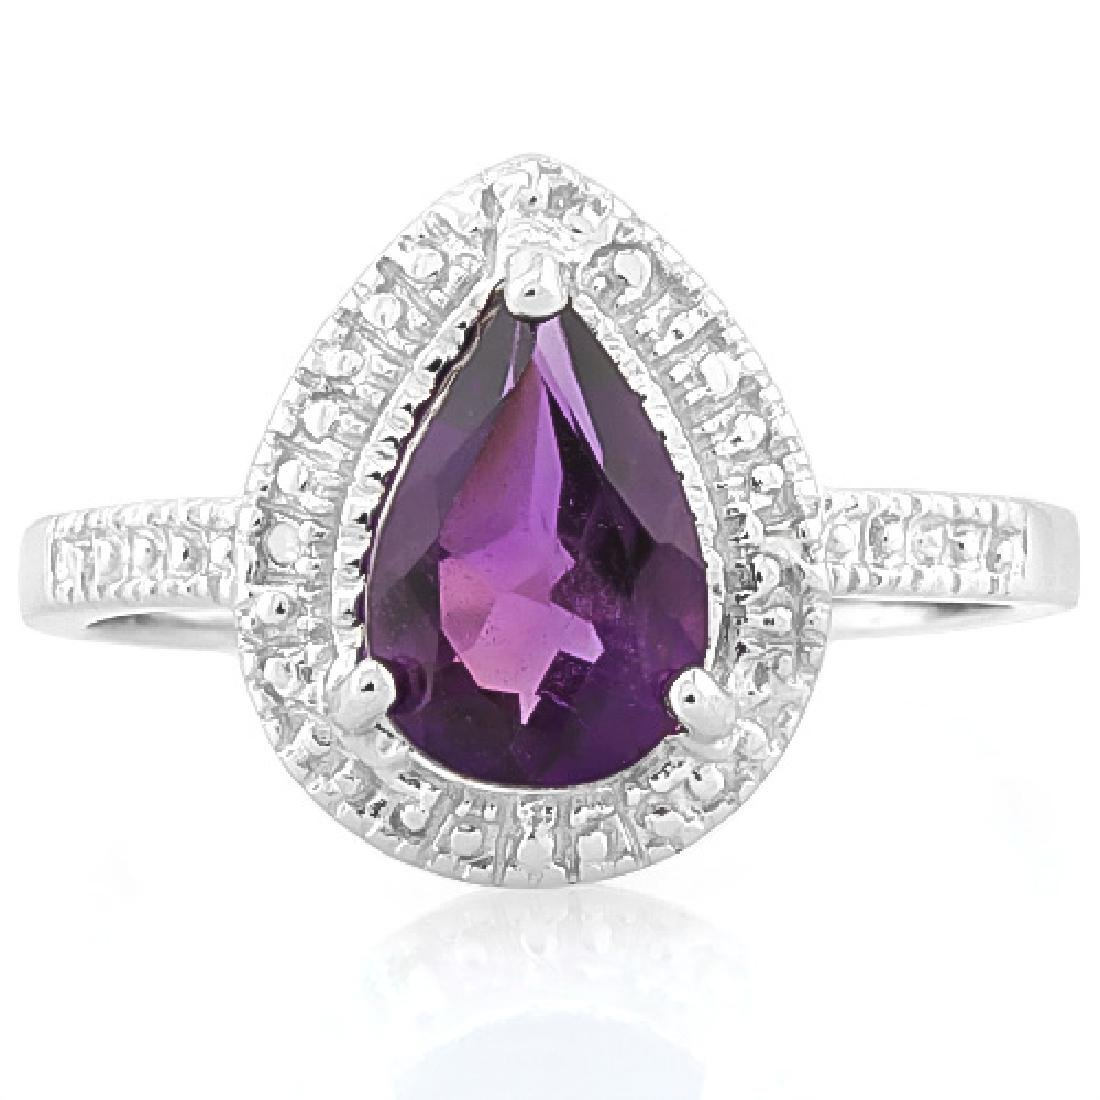 1.693 CARAT TW (3 PCS) AMETHYST & GENUINE DIAMOND PLATI